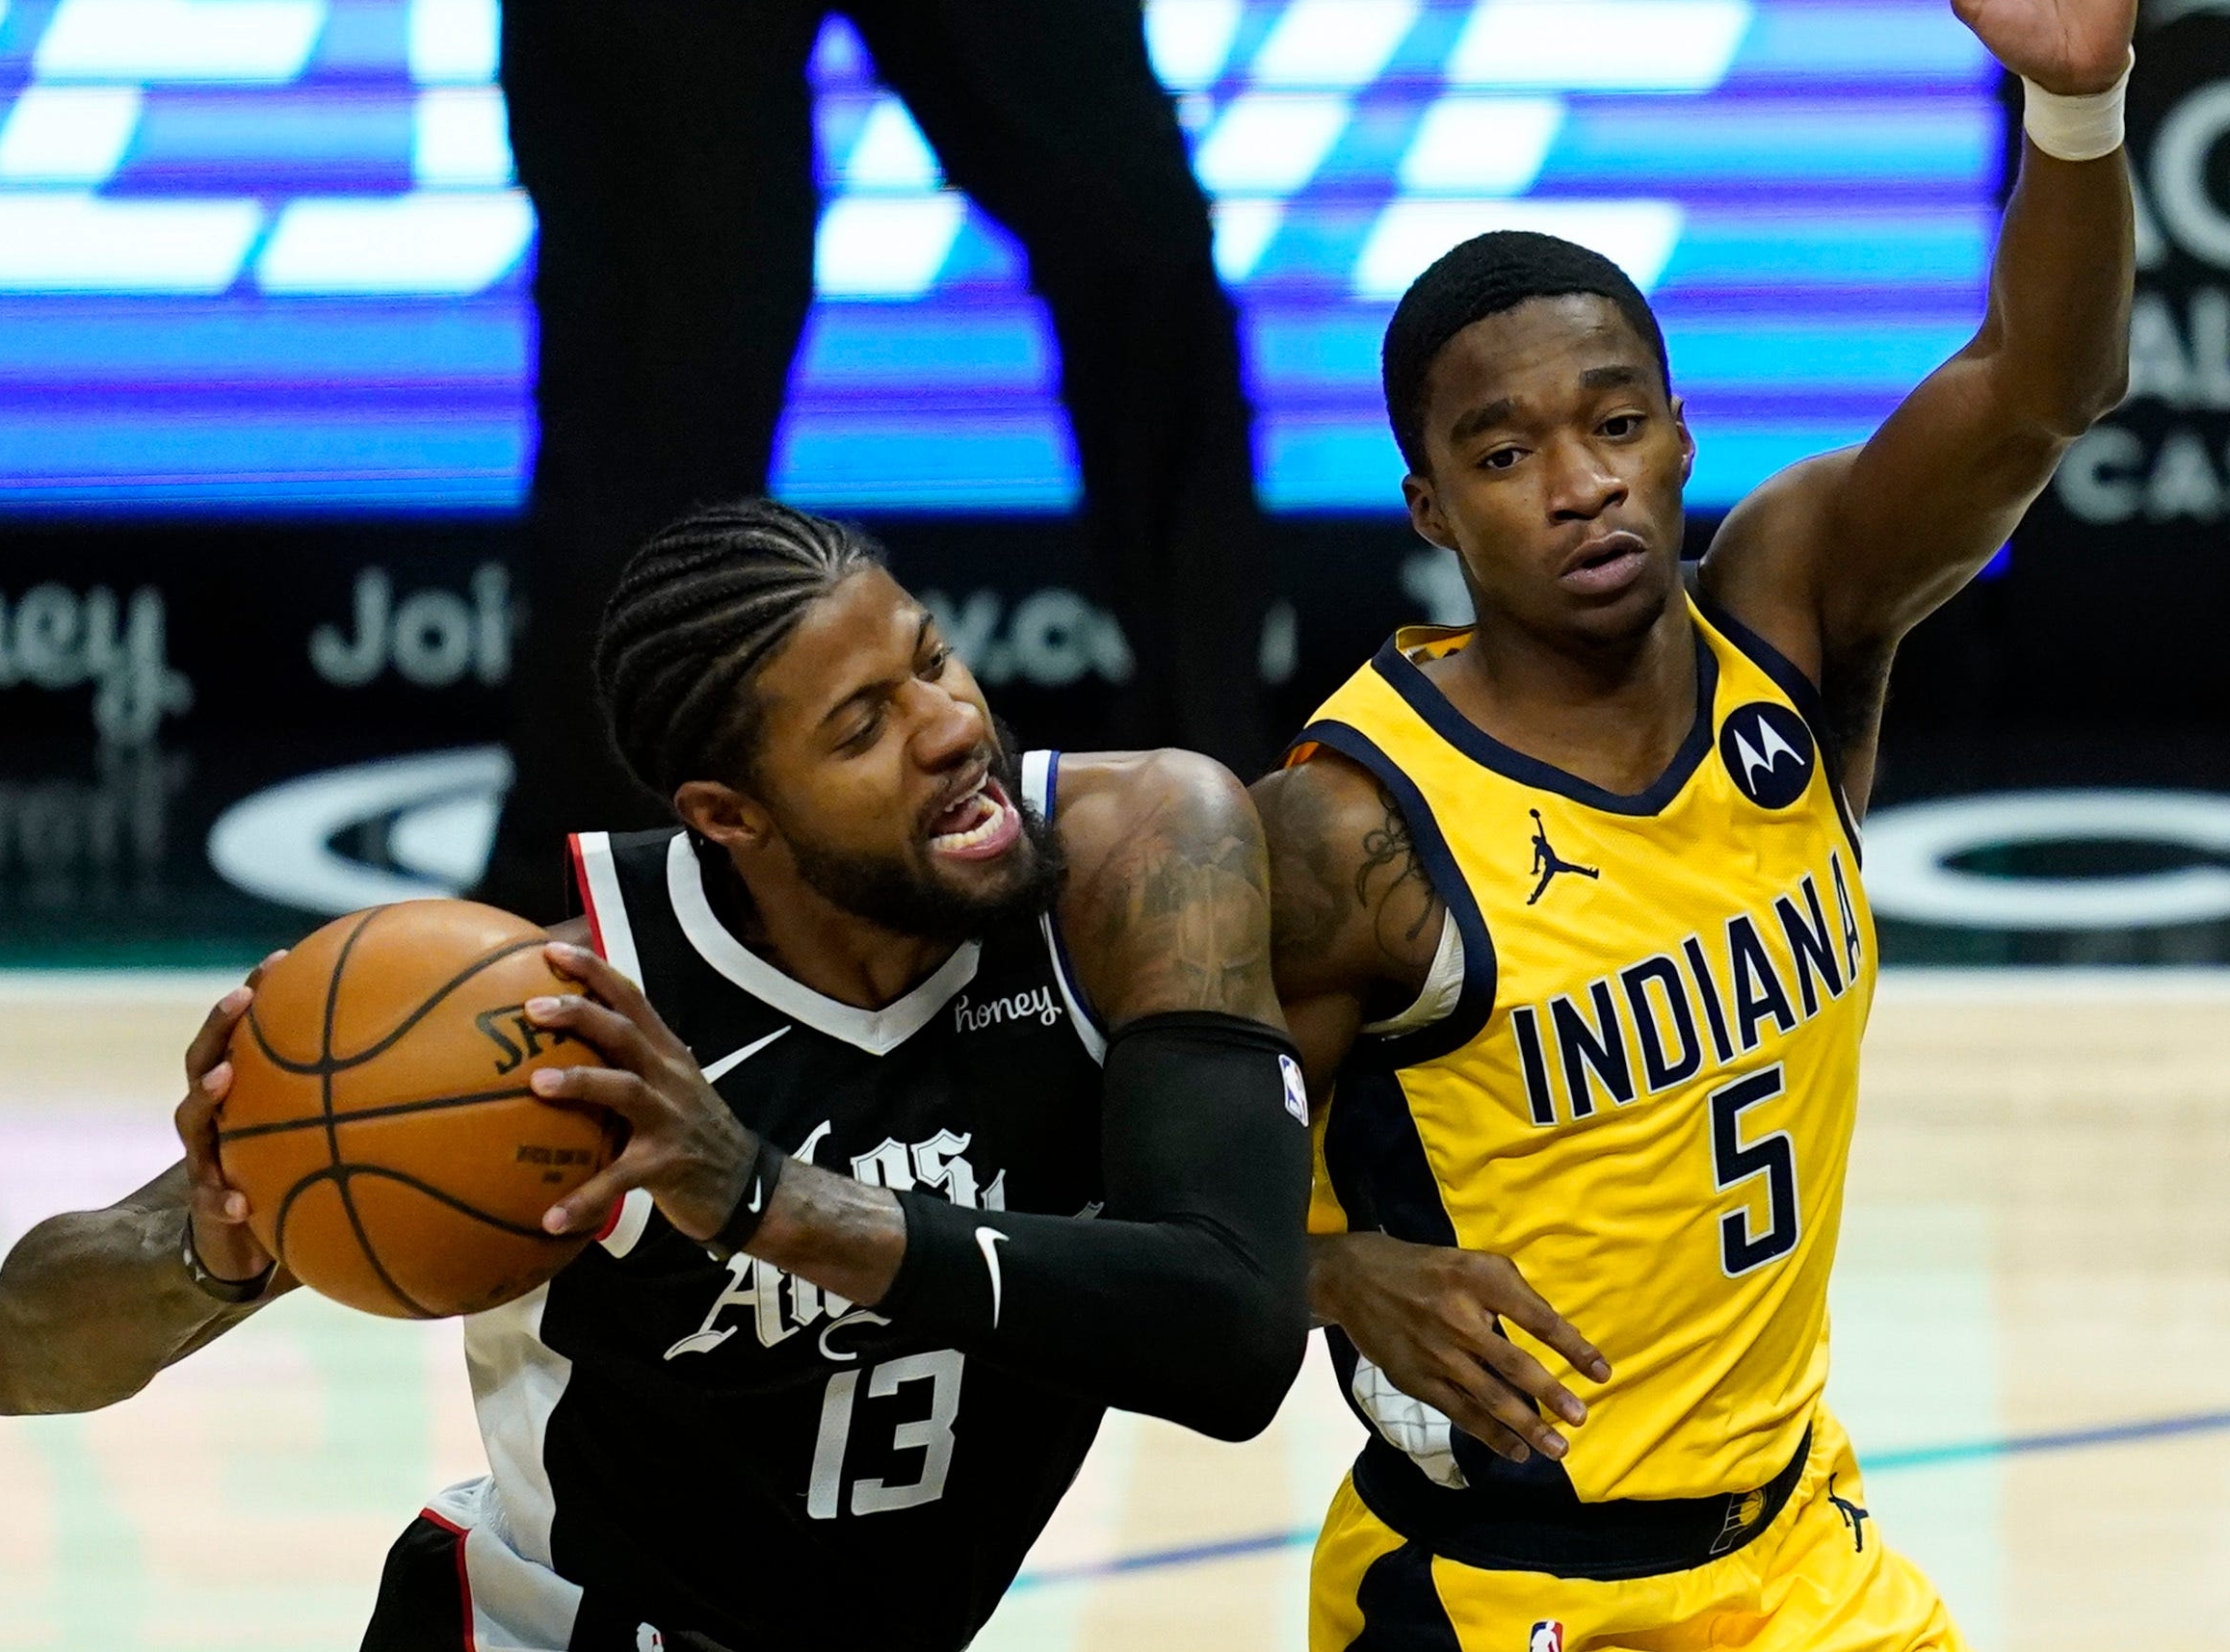 Los Angeles Clippers at Indiana Pacers Betting Pick/Player Prop